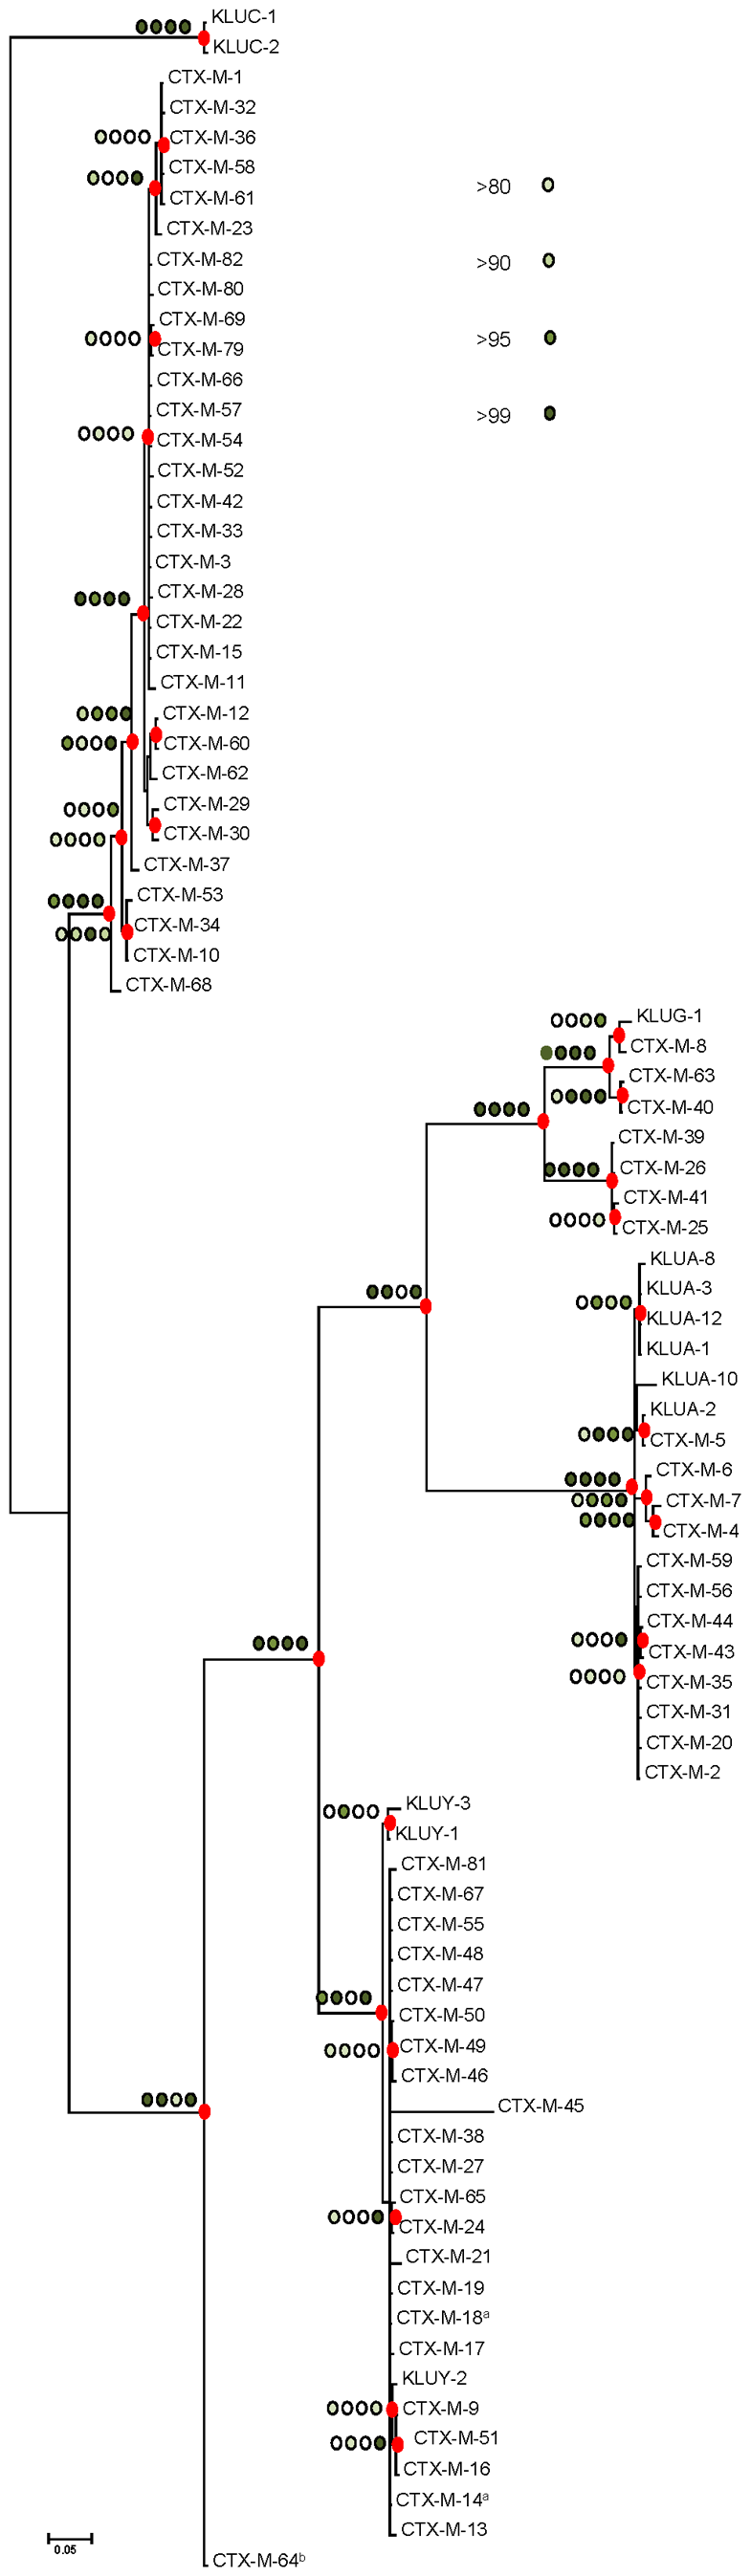 Phylogenetic tree of <i>bla</i><sub>CTX-M</sub> sequences (n=73) inferred by Bayesian analysis.